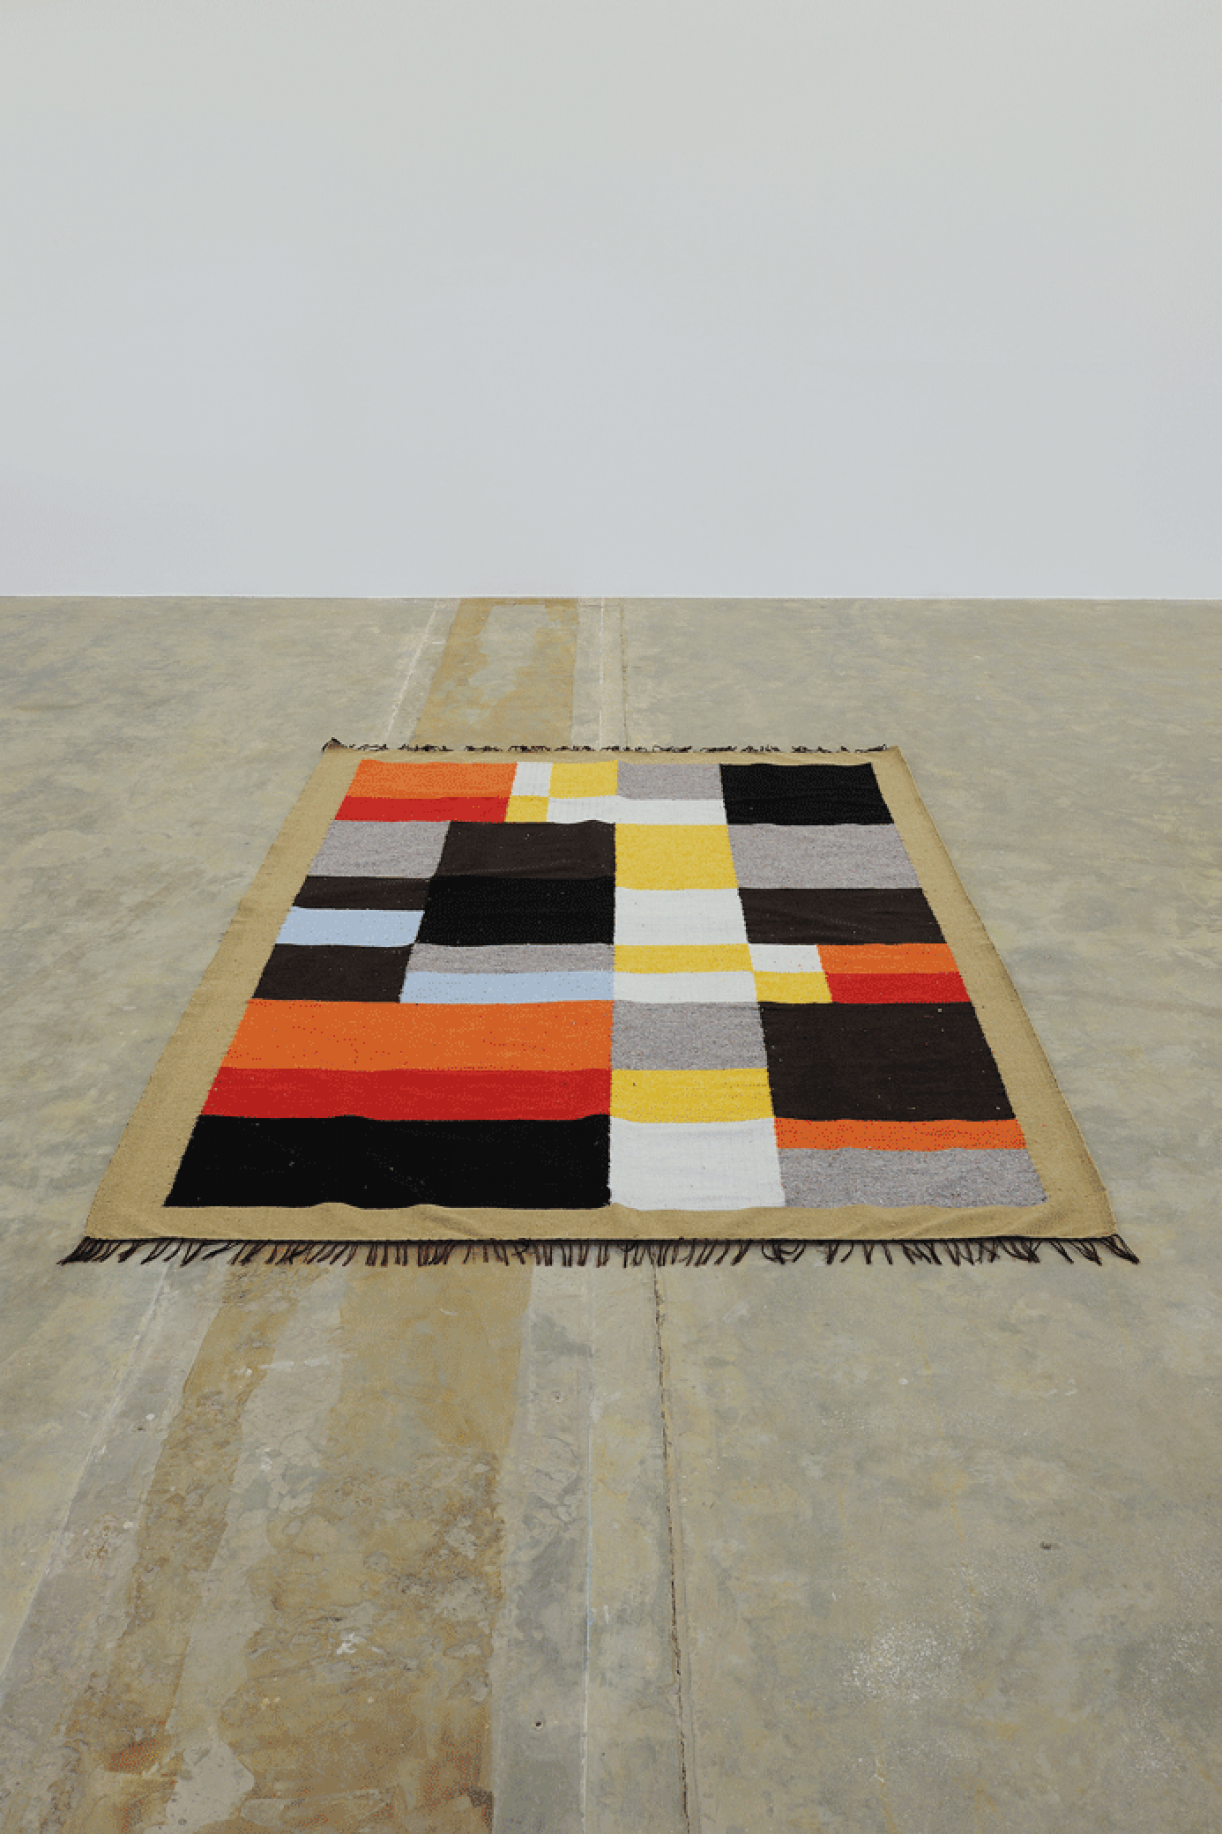 Untitled (carpet handmade in collaboration with Darna's women weaving workshop), 2015, Cotton wool, 243 x 169 cm